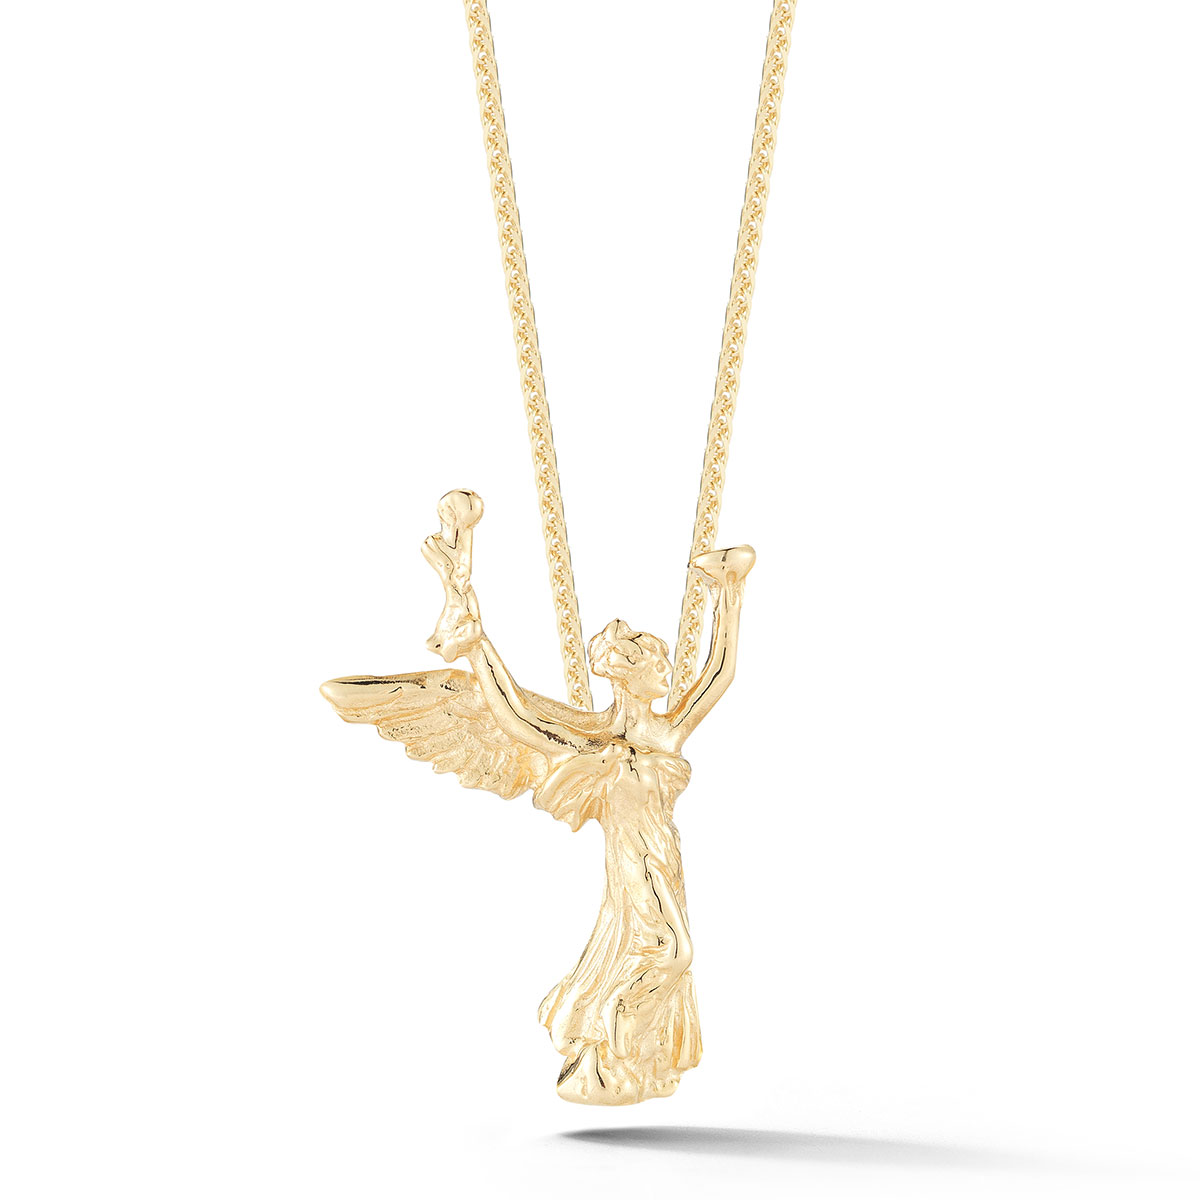 mystical donnelly deirdre pendant product spirit